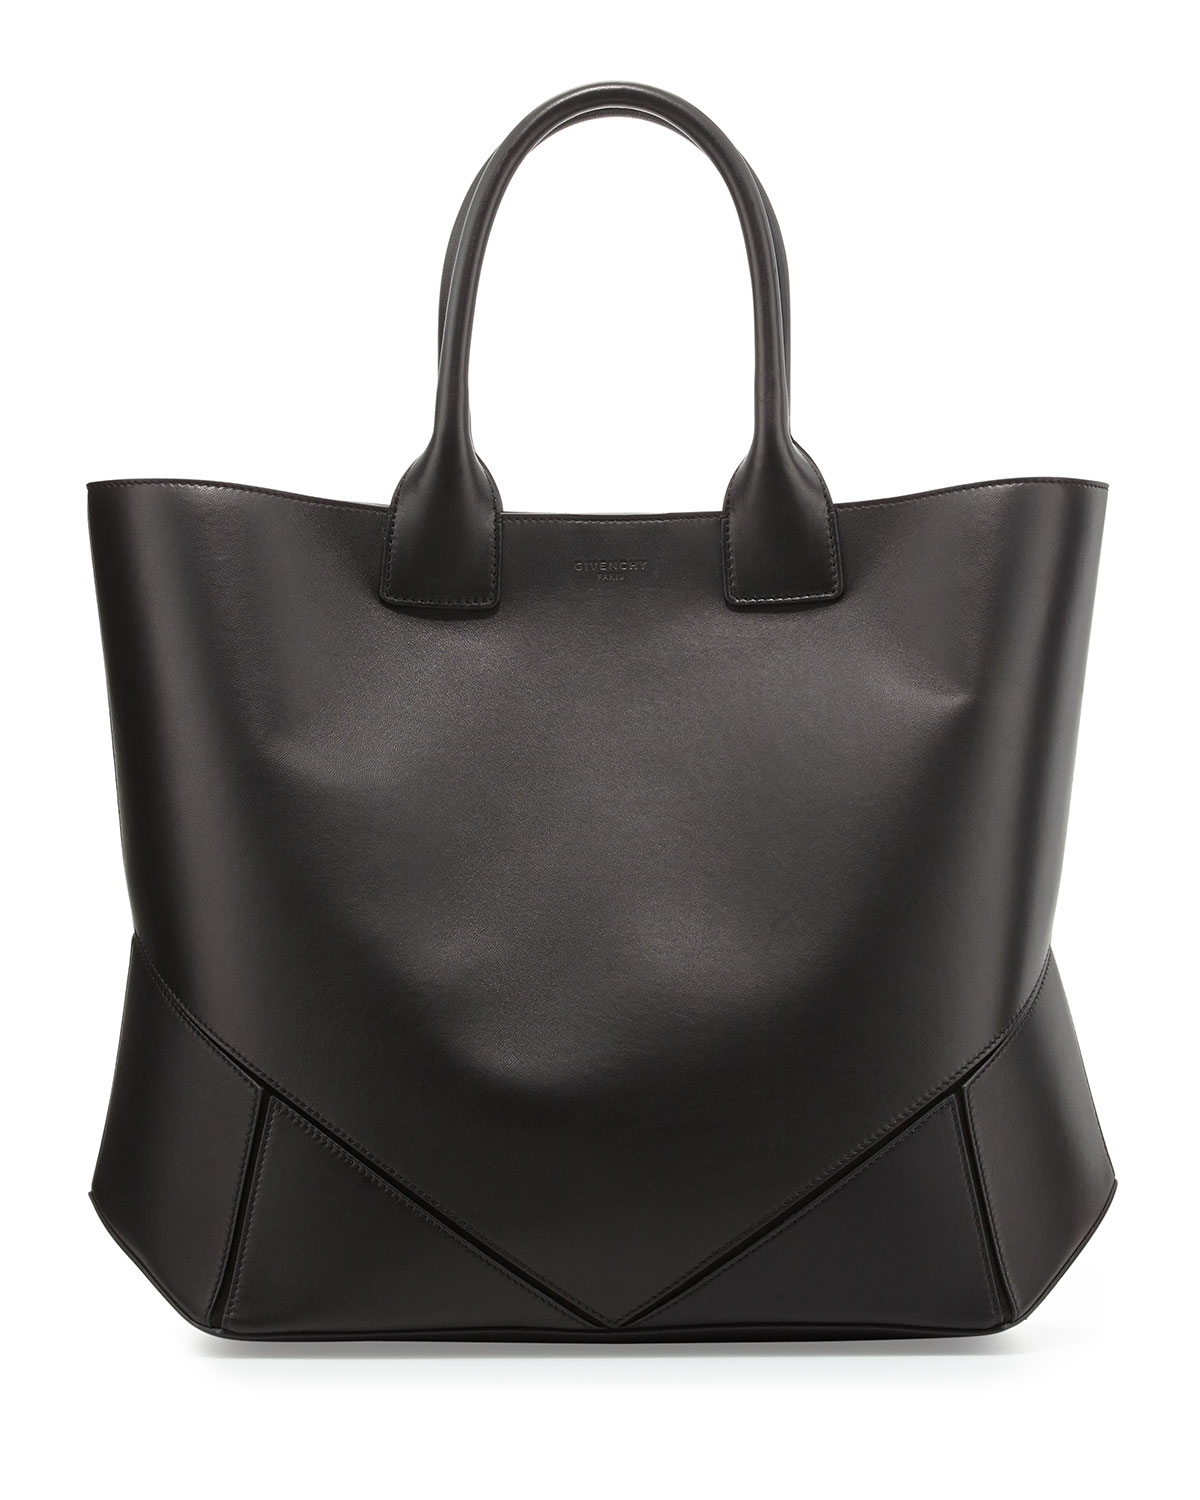 Lyst - Givenchy Easy Medium Leather Tote Bag in Black - photo#48